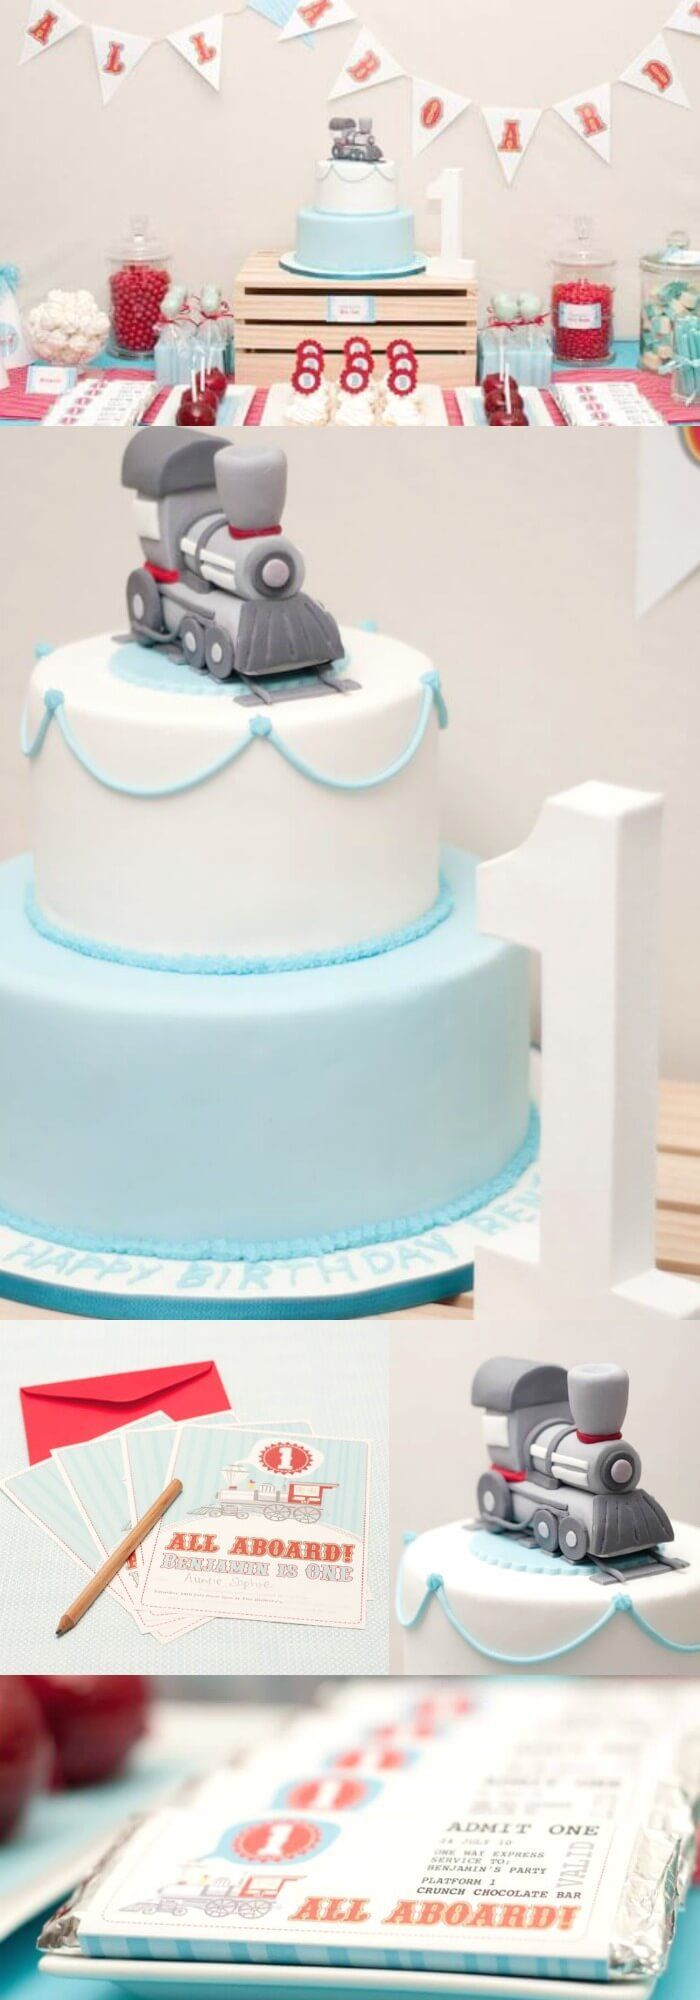 1028 best images about PARTY IDEAS on Pinterest | Curious george ...